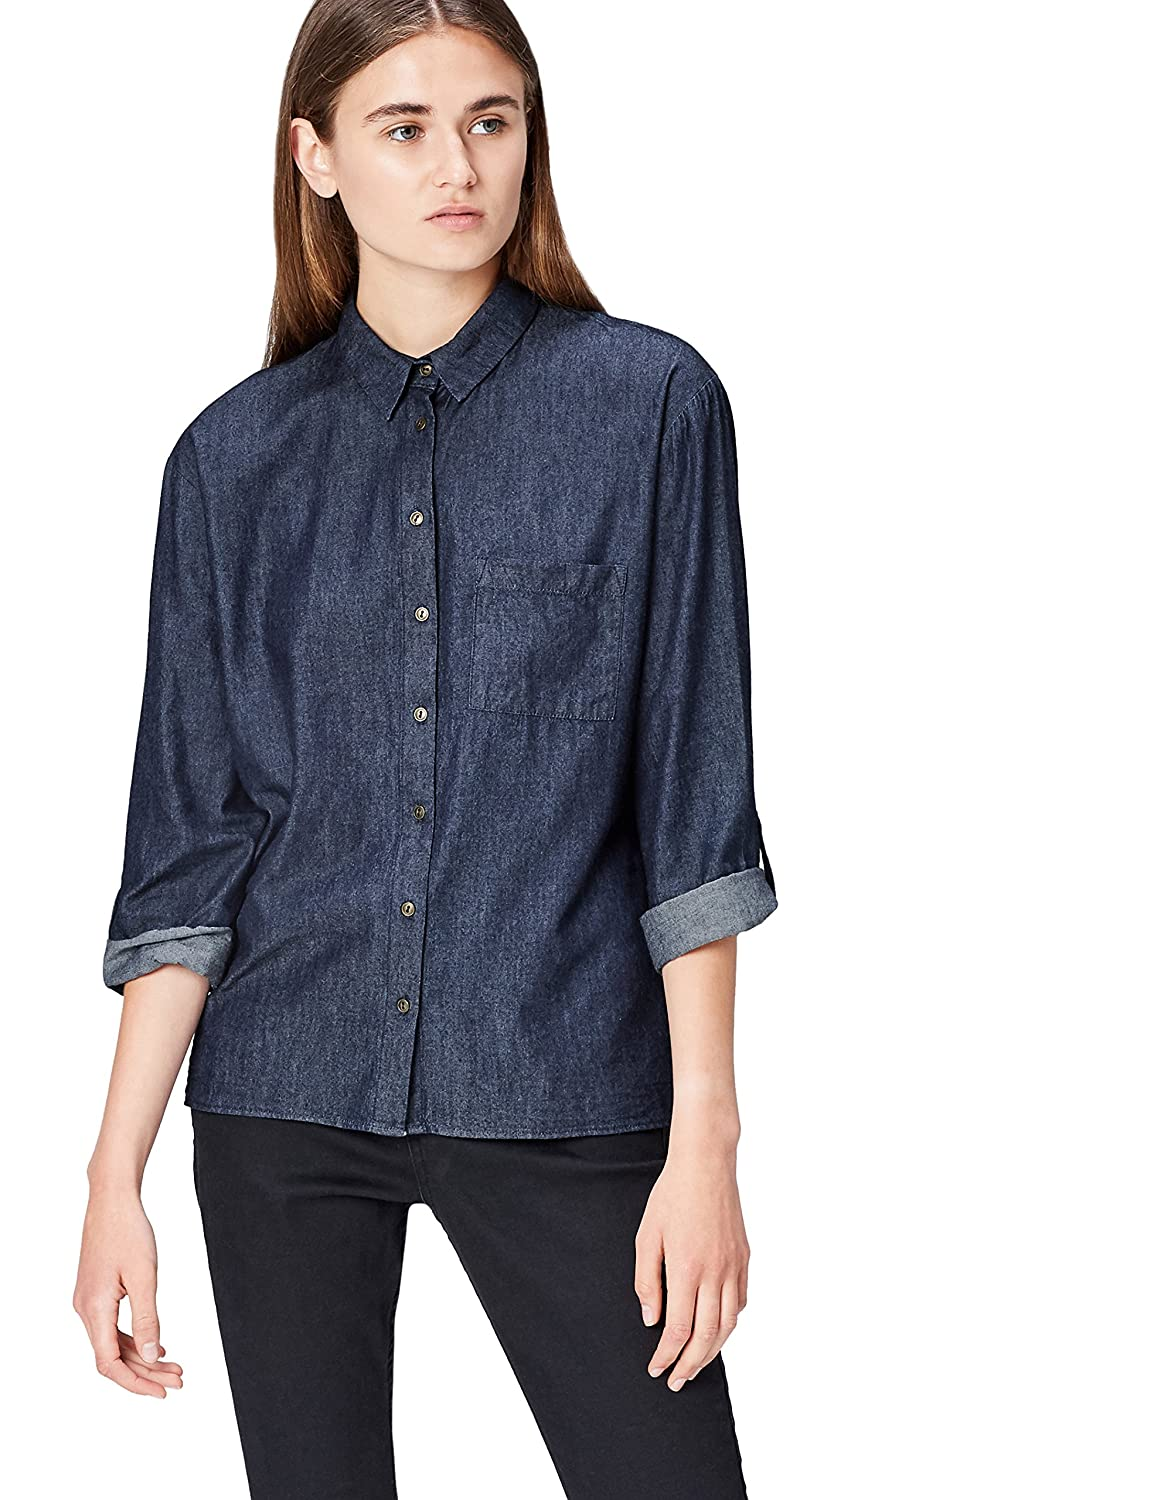 Marca Amazon - find. Blusa Mujer